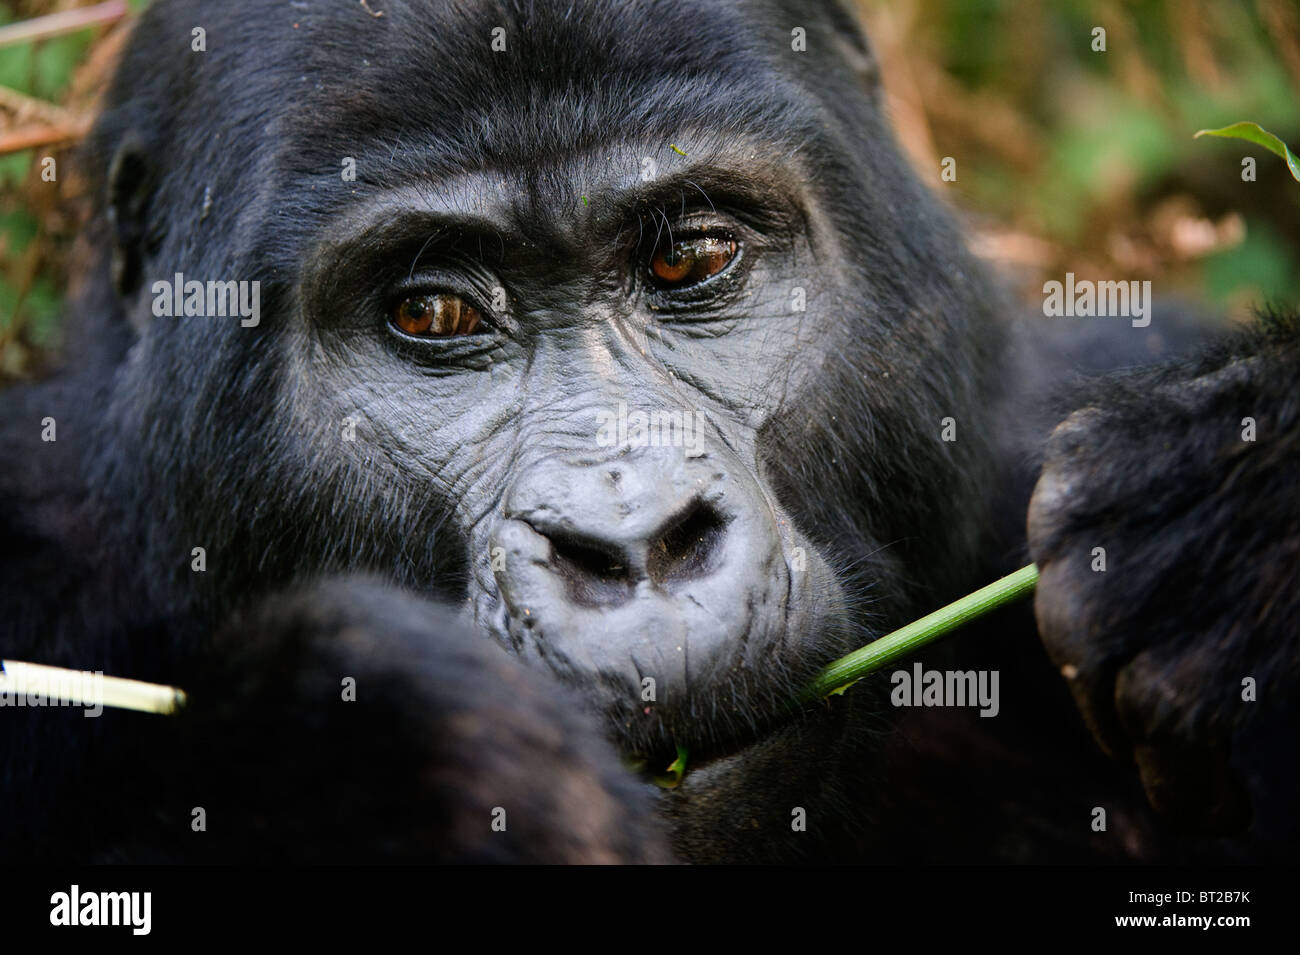 The Mountain Gorilla eating. - Stock Image